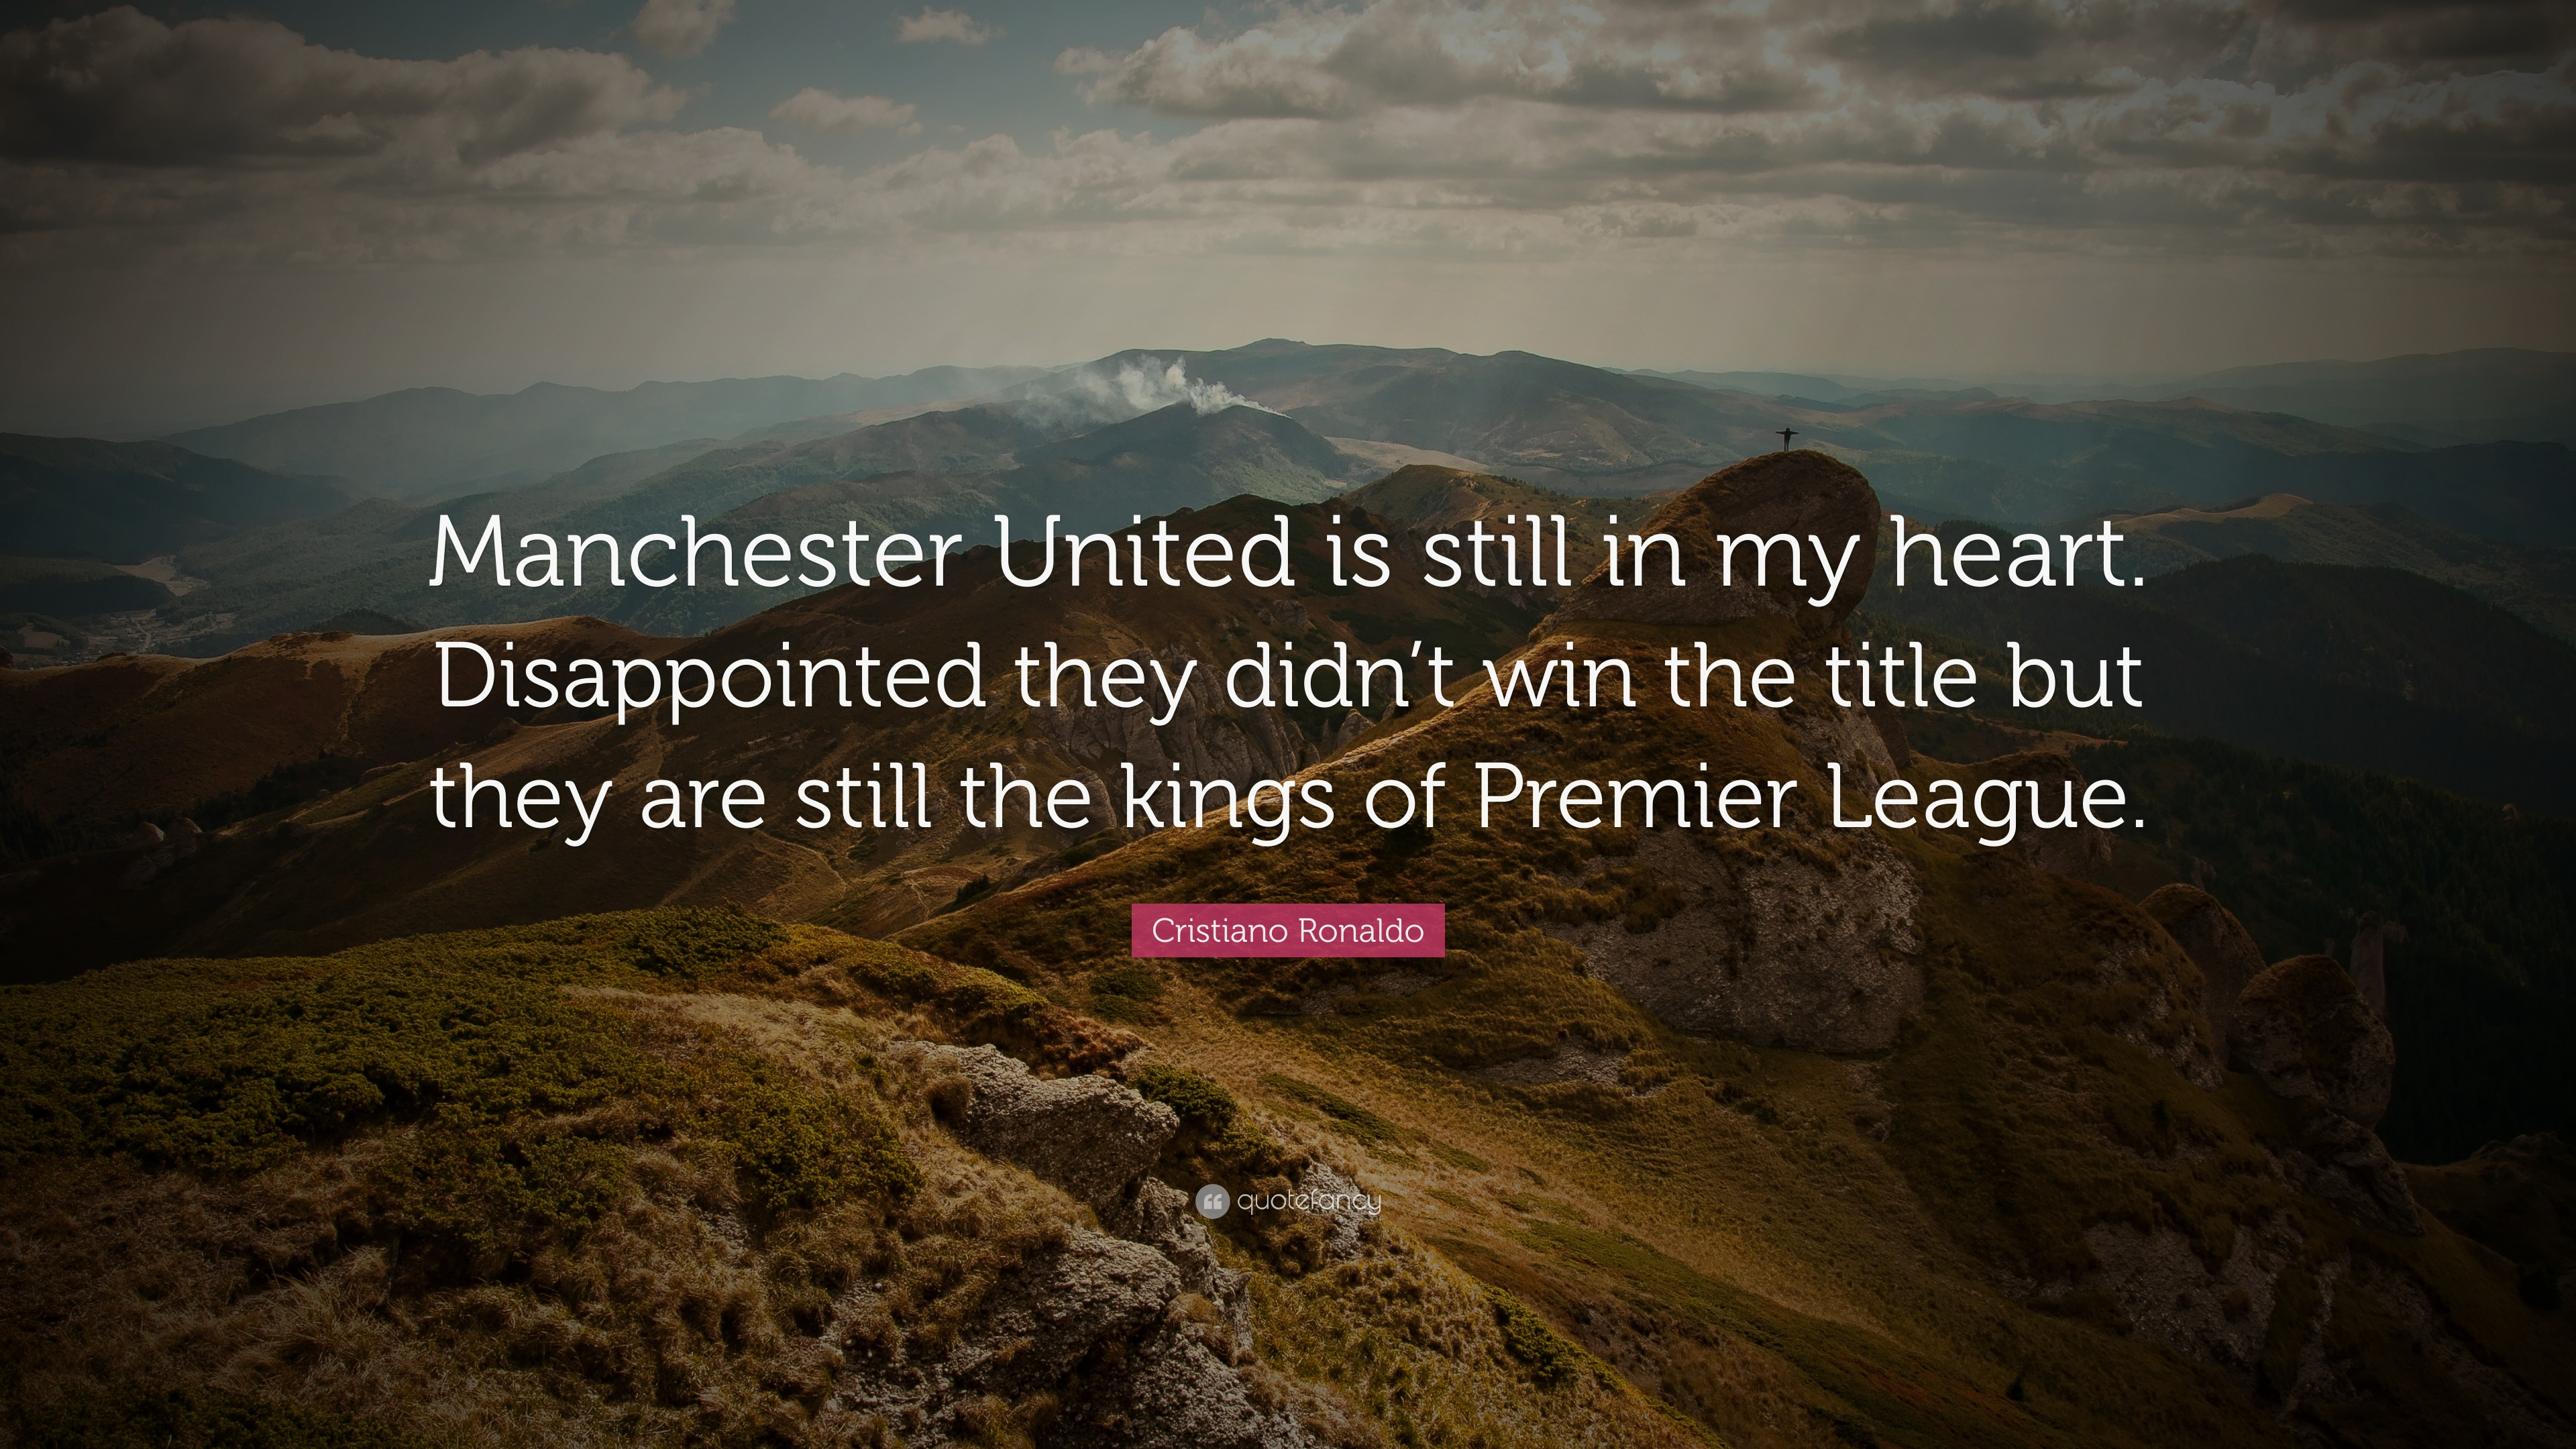 Cristiano Ronaldo Quote Manchester United Is Still In My Heart Disappointed They Didn T Win The Title But They Are Still The Kings Of Premier L 12 Wallpapers Quotefancy